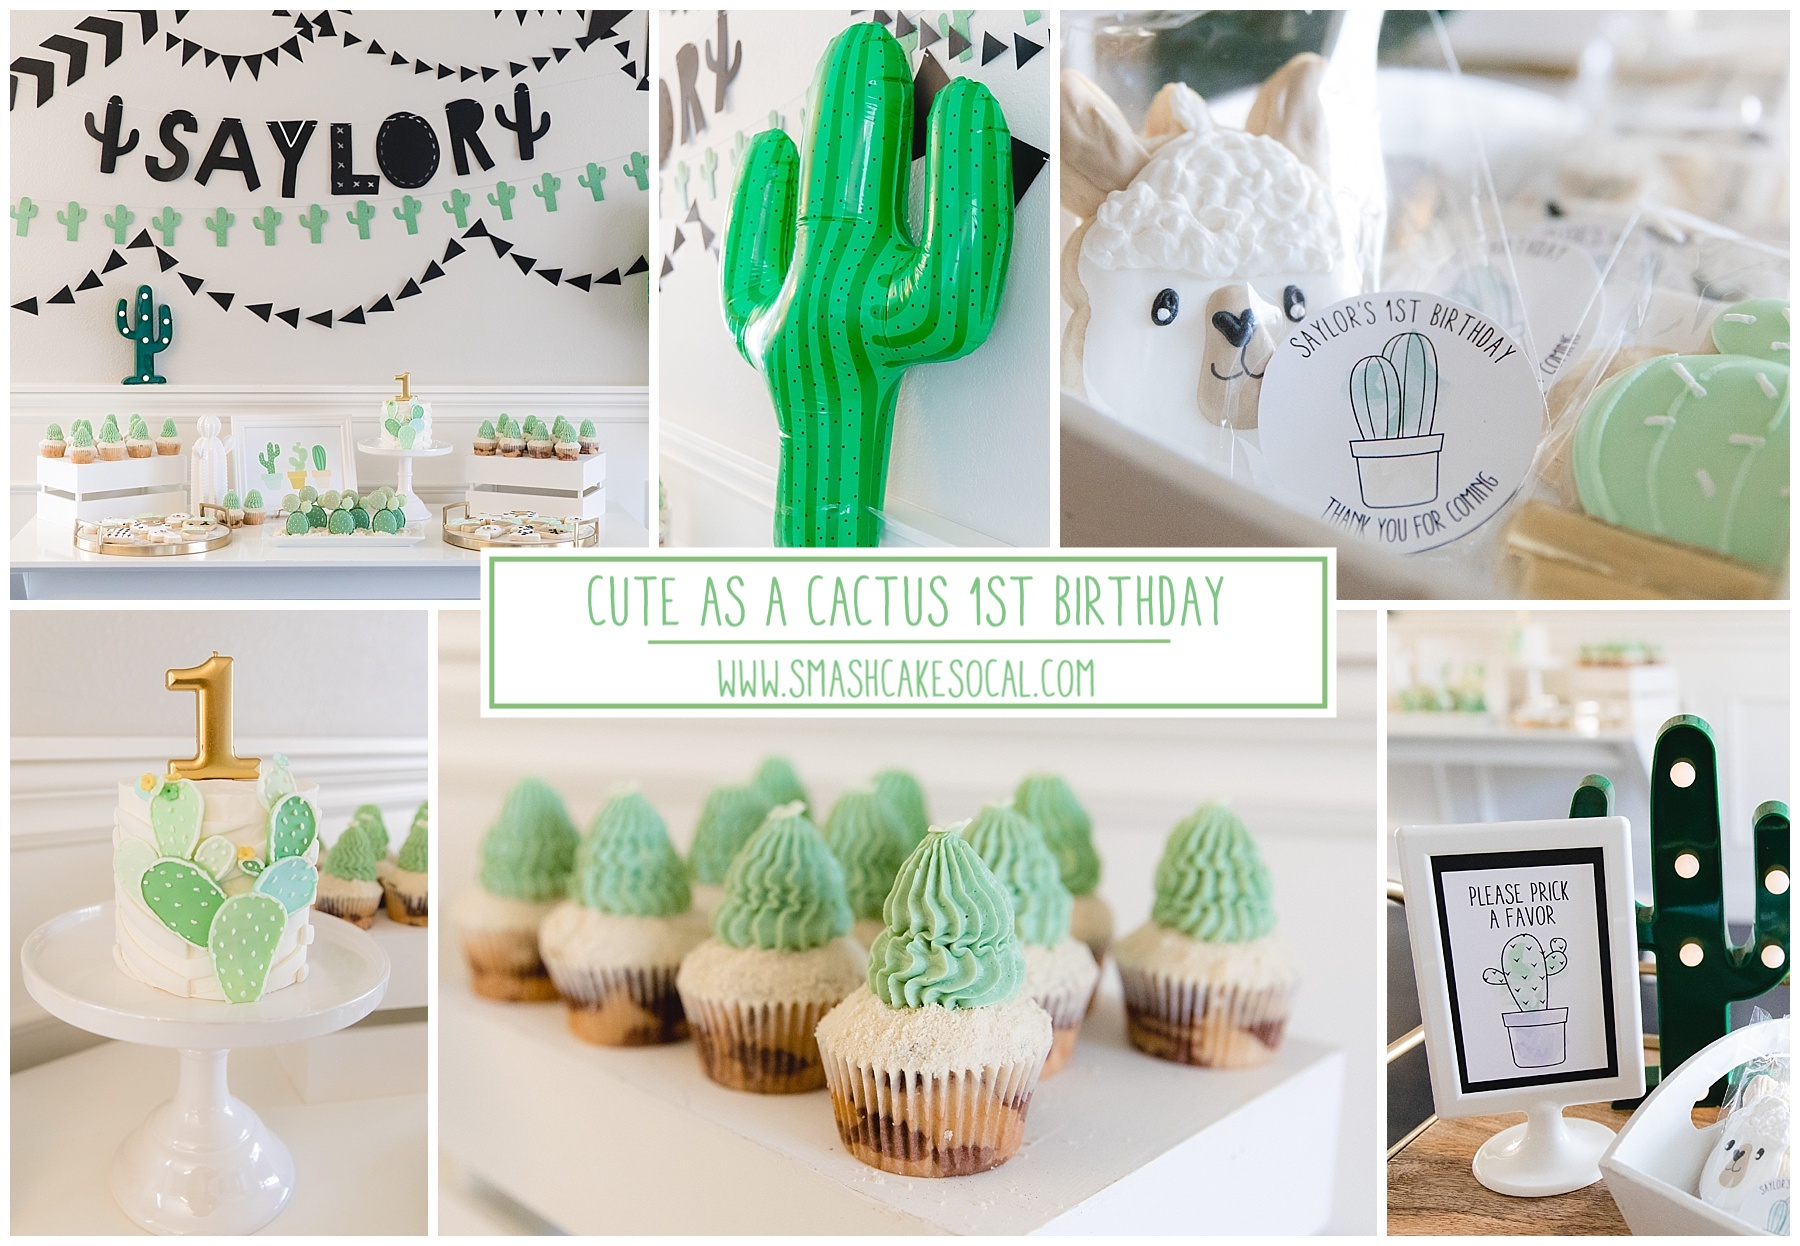 Cute Little Cactus 1st Birthday Party Smash Cake